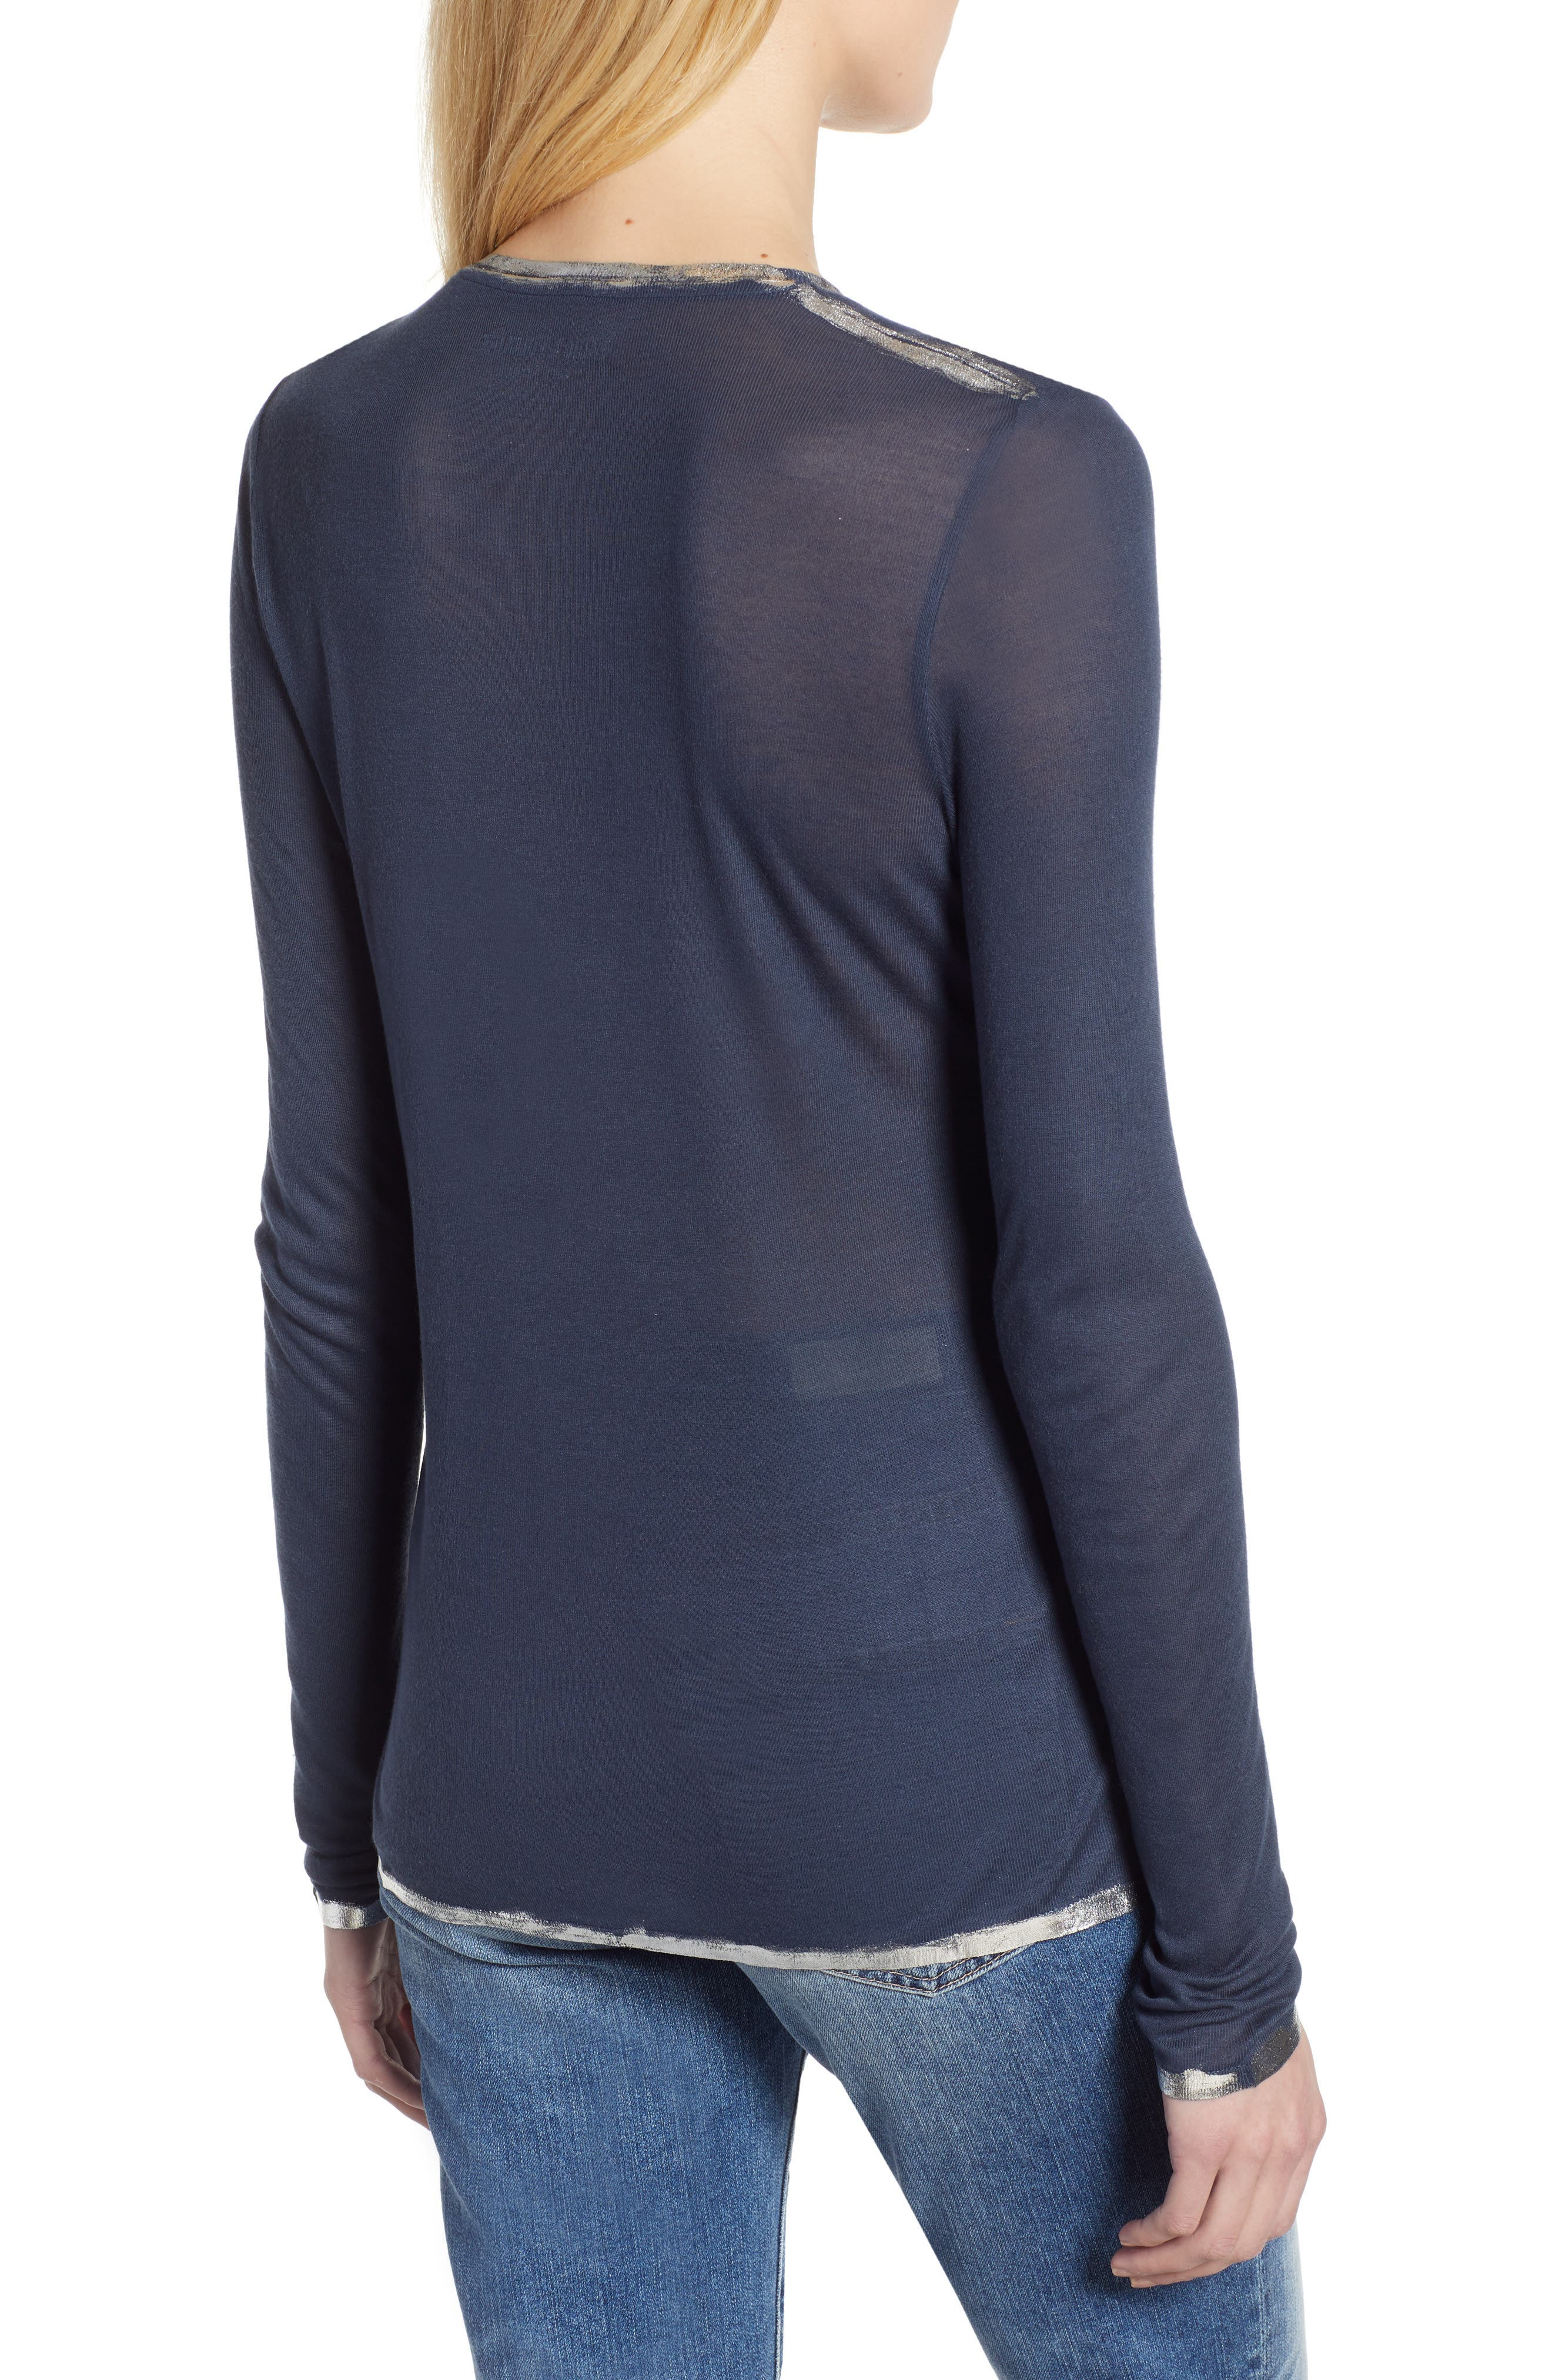 ZADIG & VOLTAIRE, Willy Foil Tee, Alternate thumbnail 2, color, MARINE